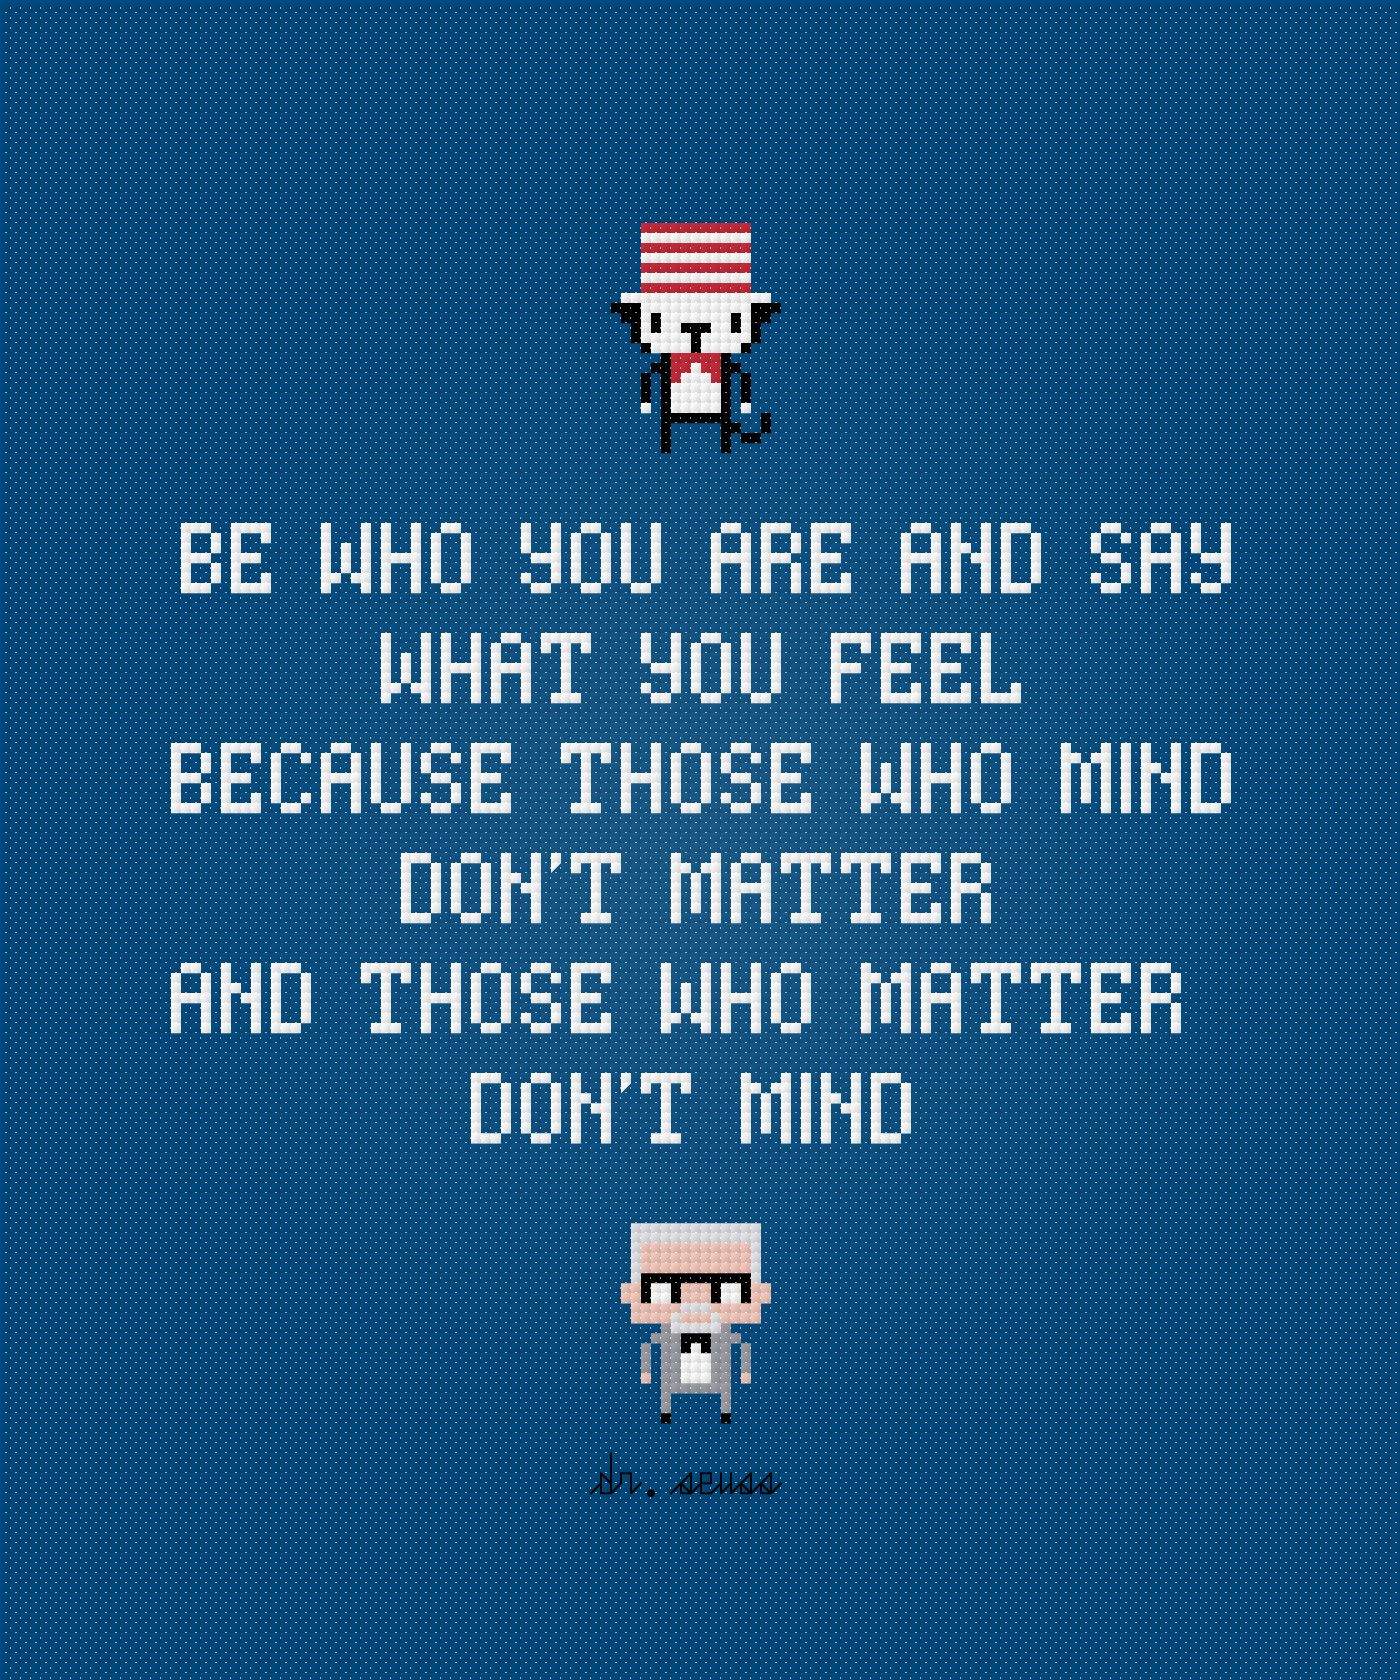 Be who you are - Dr. Seuss Quote - PixelPower - Amazing Cross-Stitch Patterns